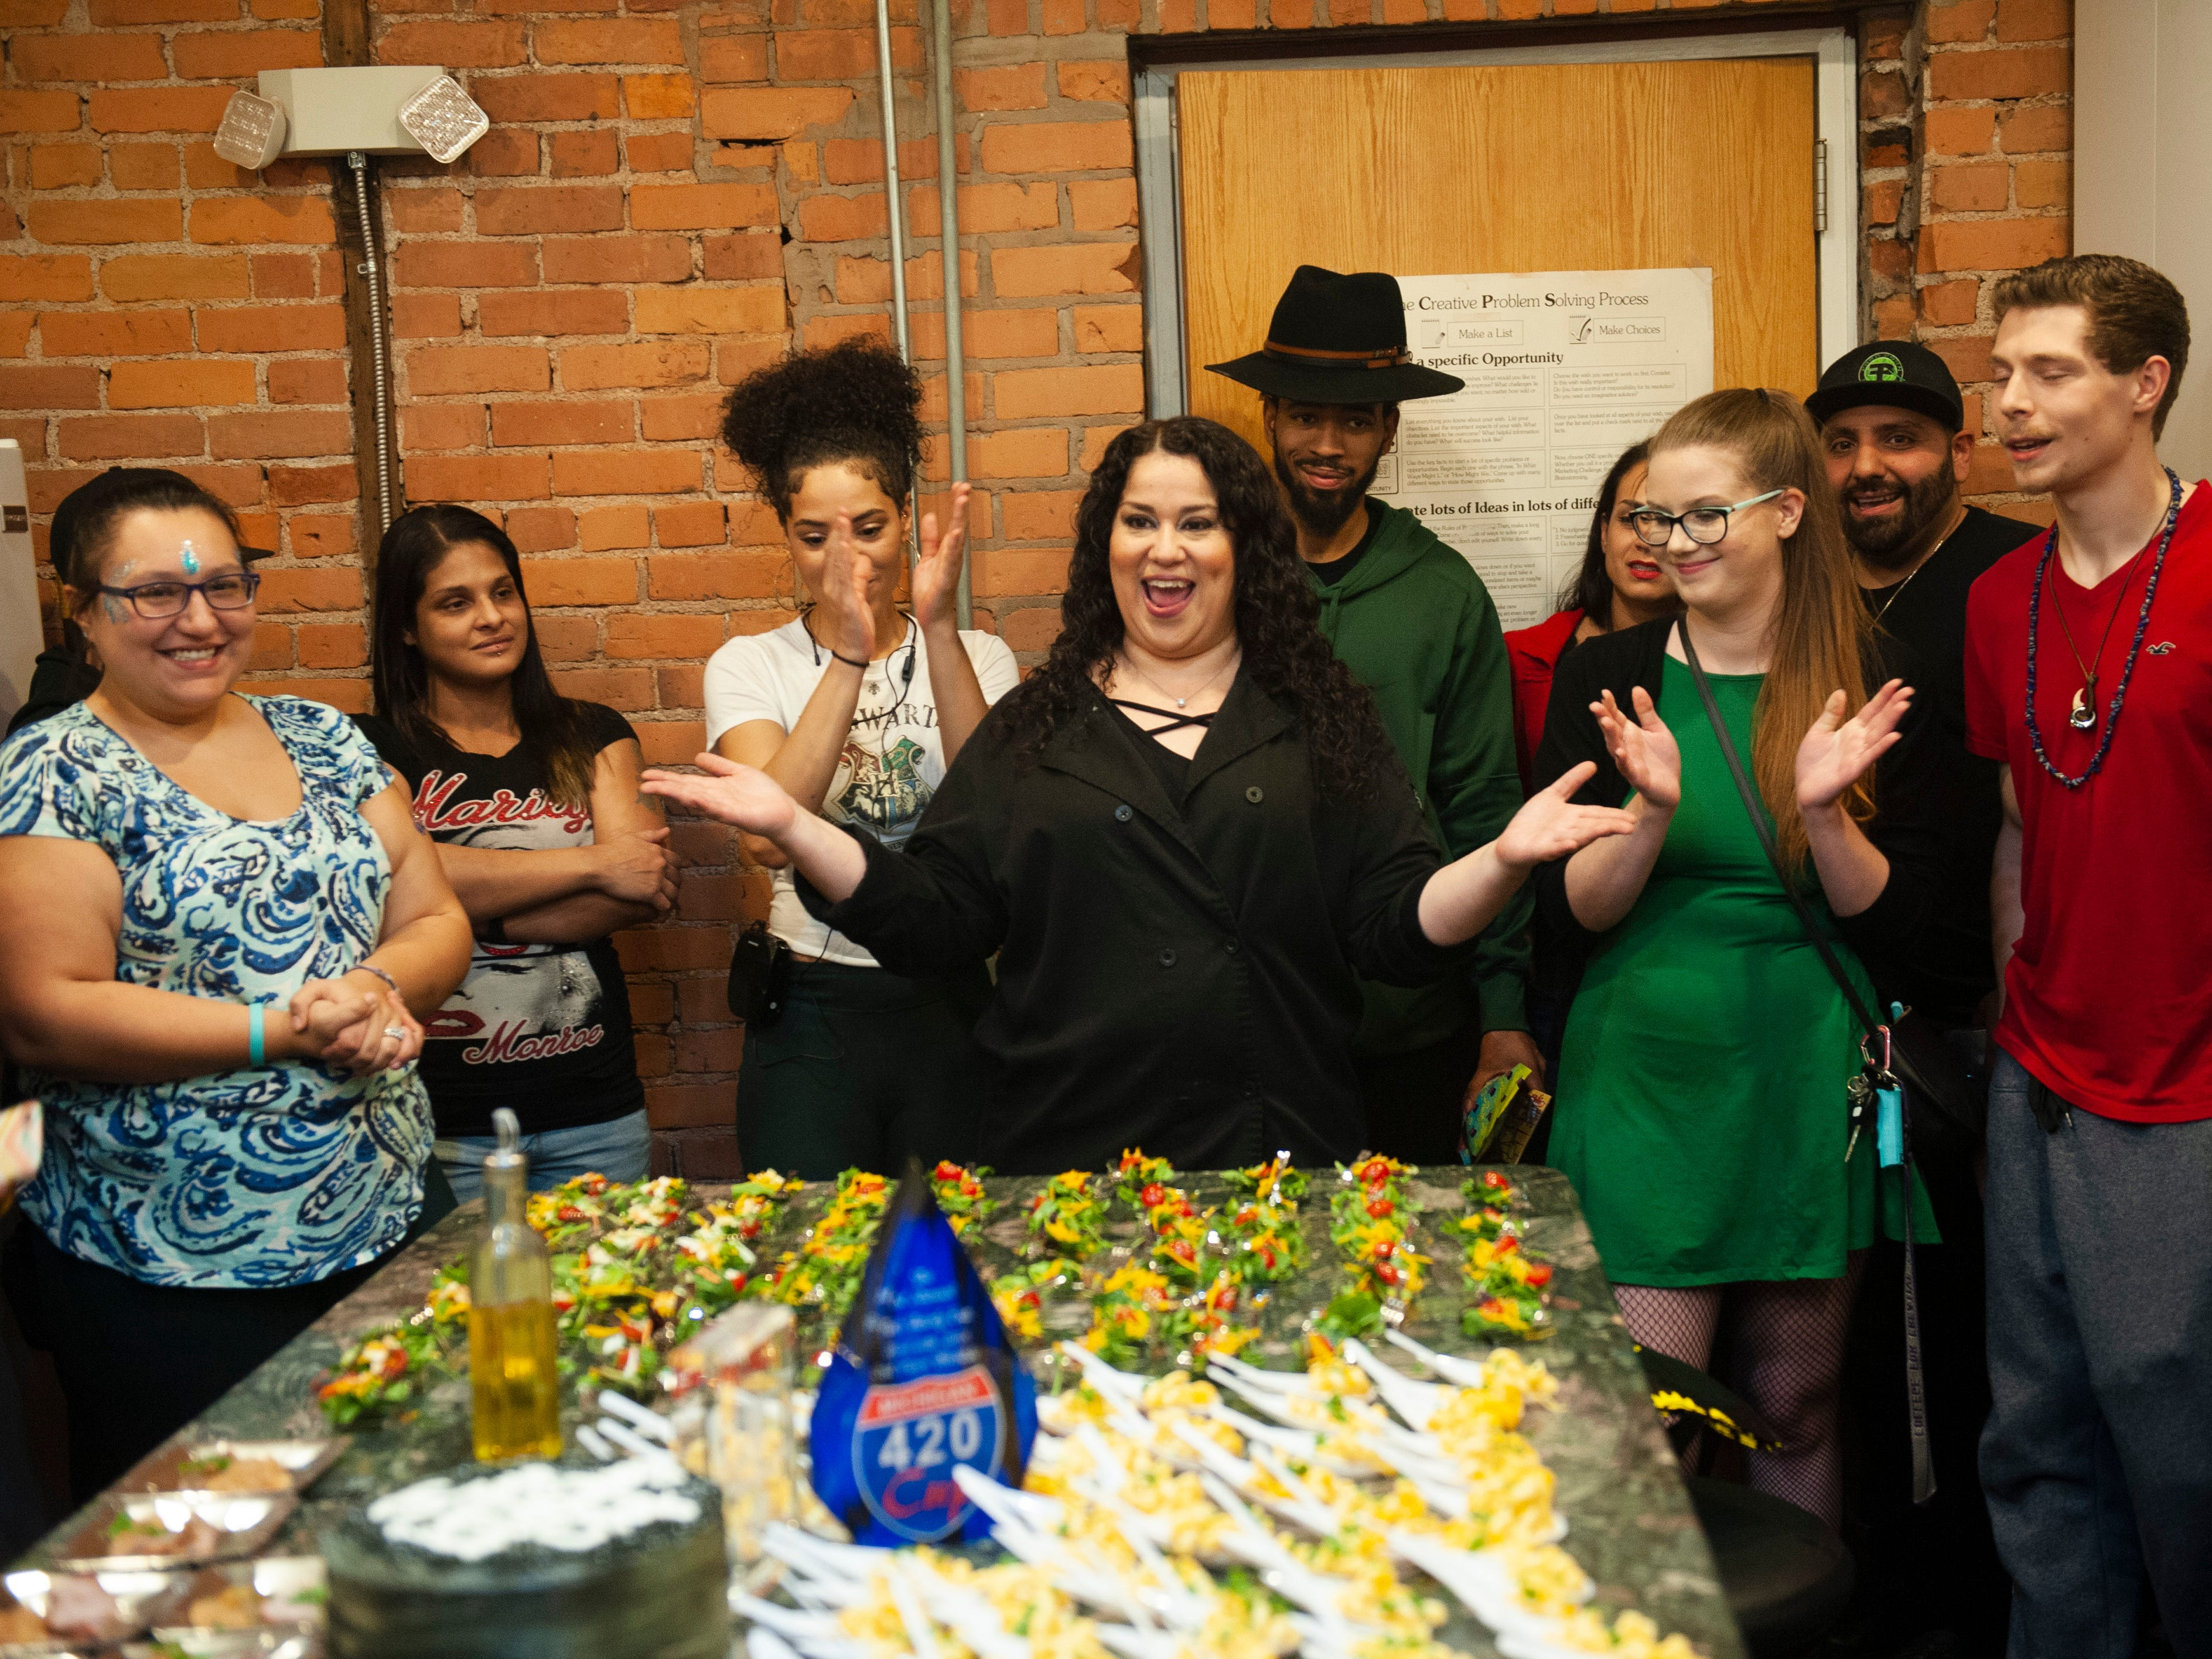 """Cannabis Concepts chef Gigi Diaz, center, celebrates her birthday by welcoming event guests to sample THC-infused edibles from sweets to pork loin, salad to mac and cheese, have a good time and """"get lit"""" during """"The Art of Cannabis"""" tasting and art exhibition at the Cannabis Counsel in Detroit on Saturday, Dec. 22, 2018. Guests bought a ticket to the event, but once inside were treated to free samples of cannabis edibles."""